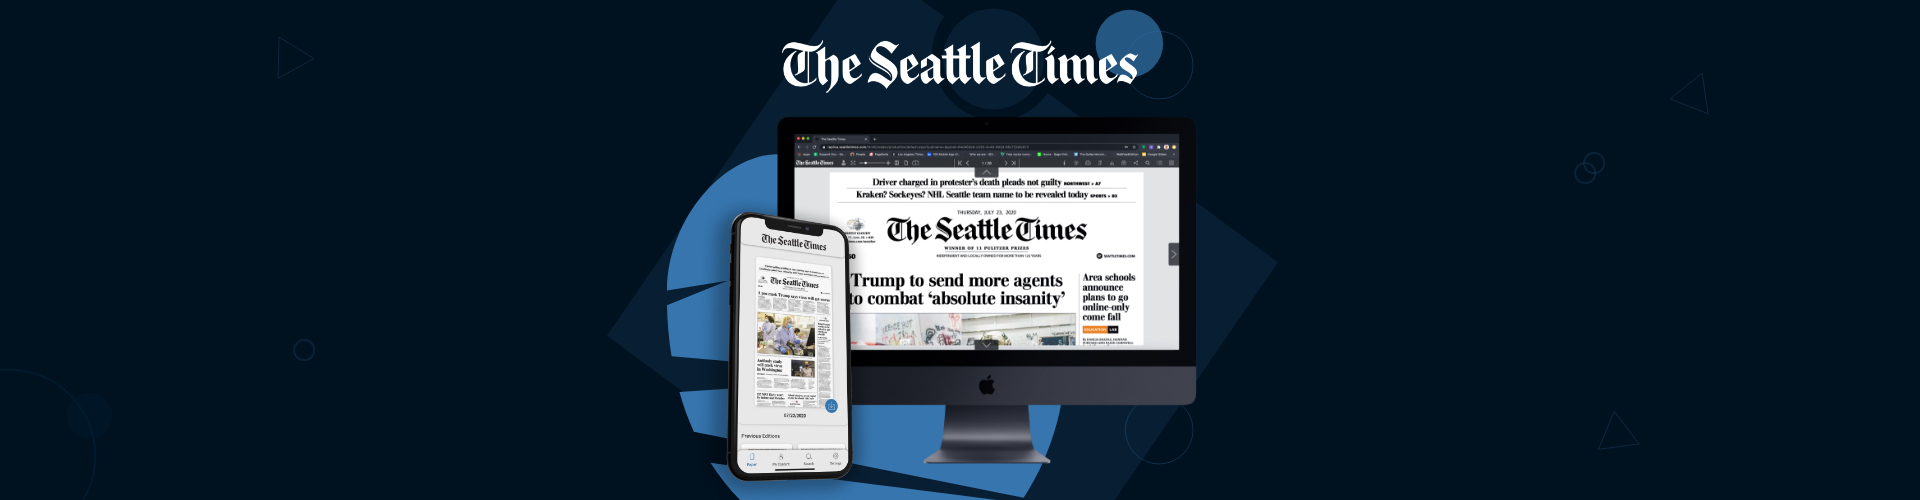 Header image of The Seattle Times Launch on PageSuite's Edition Platform